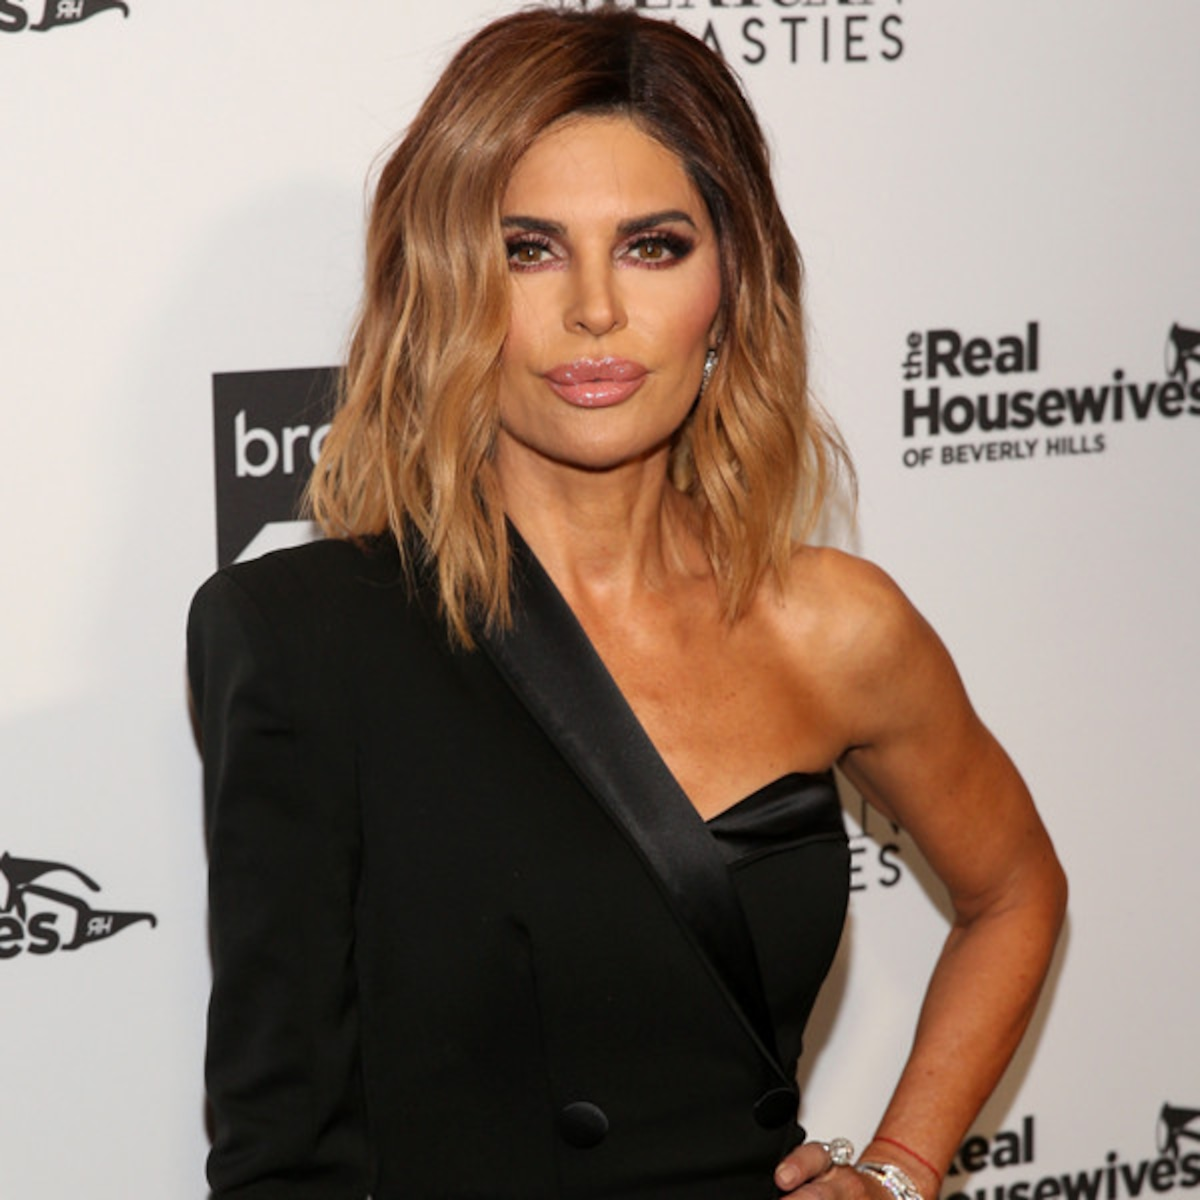 Lisa Rinna responds on Instagram